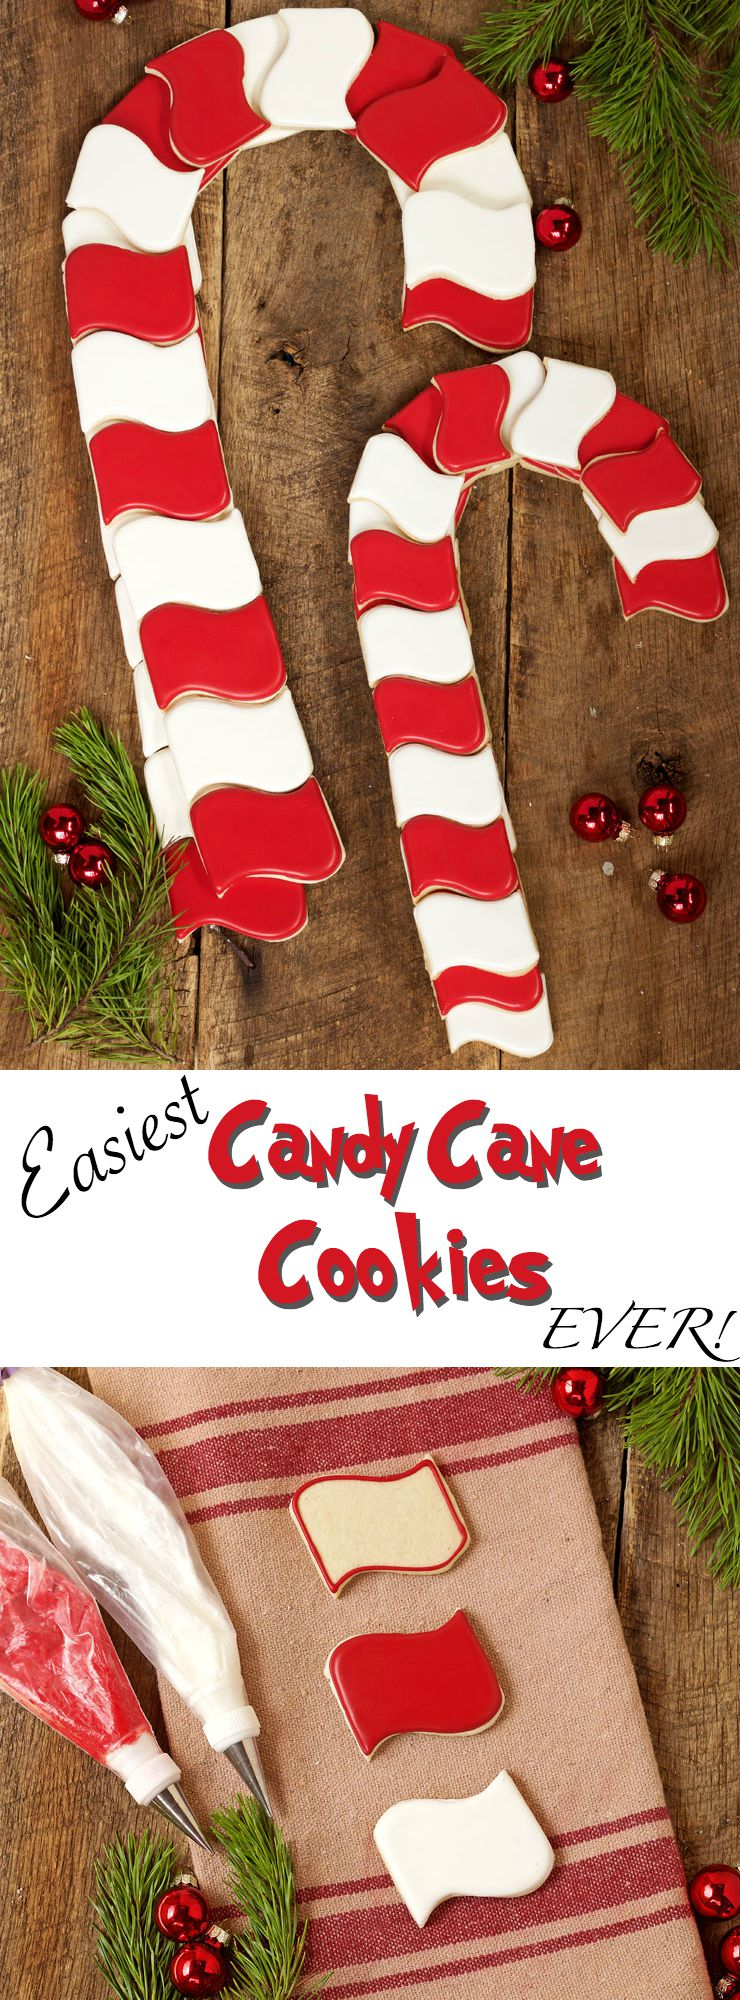 The Easiest Candy Cane Cookies Ever! Simple Christmas Cookies via www.thebearfootbaker.com